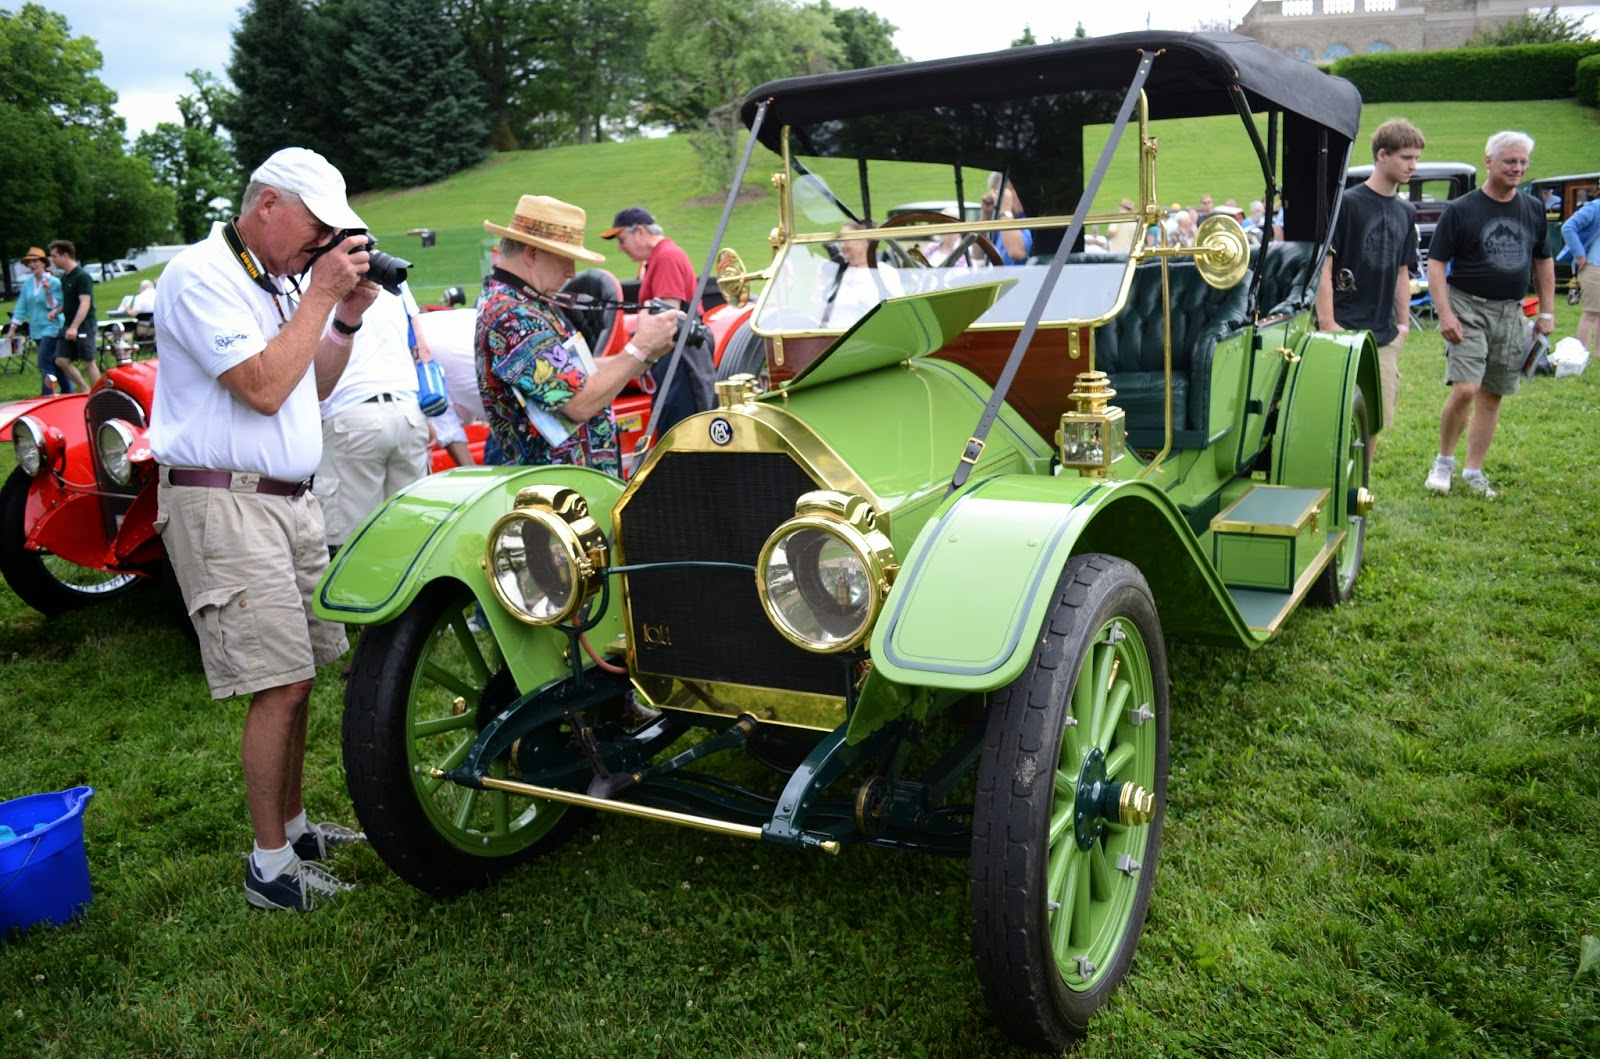 saxon two seat roadster a 1910 stevens duryea model y seven passenger touring a 1911 chalmers model 30 toy tanneau and a 1916 marmon 34a runabout